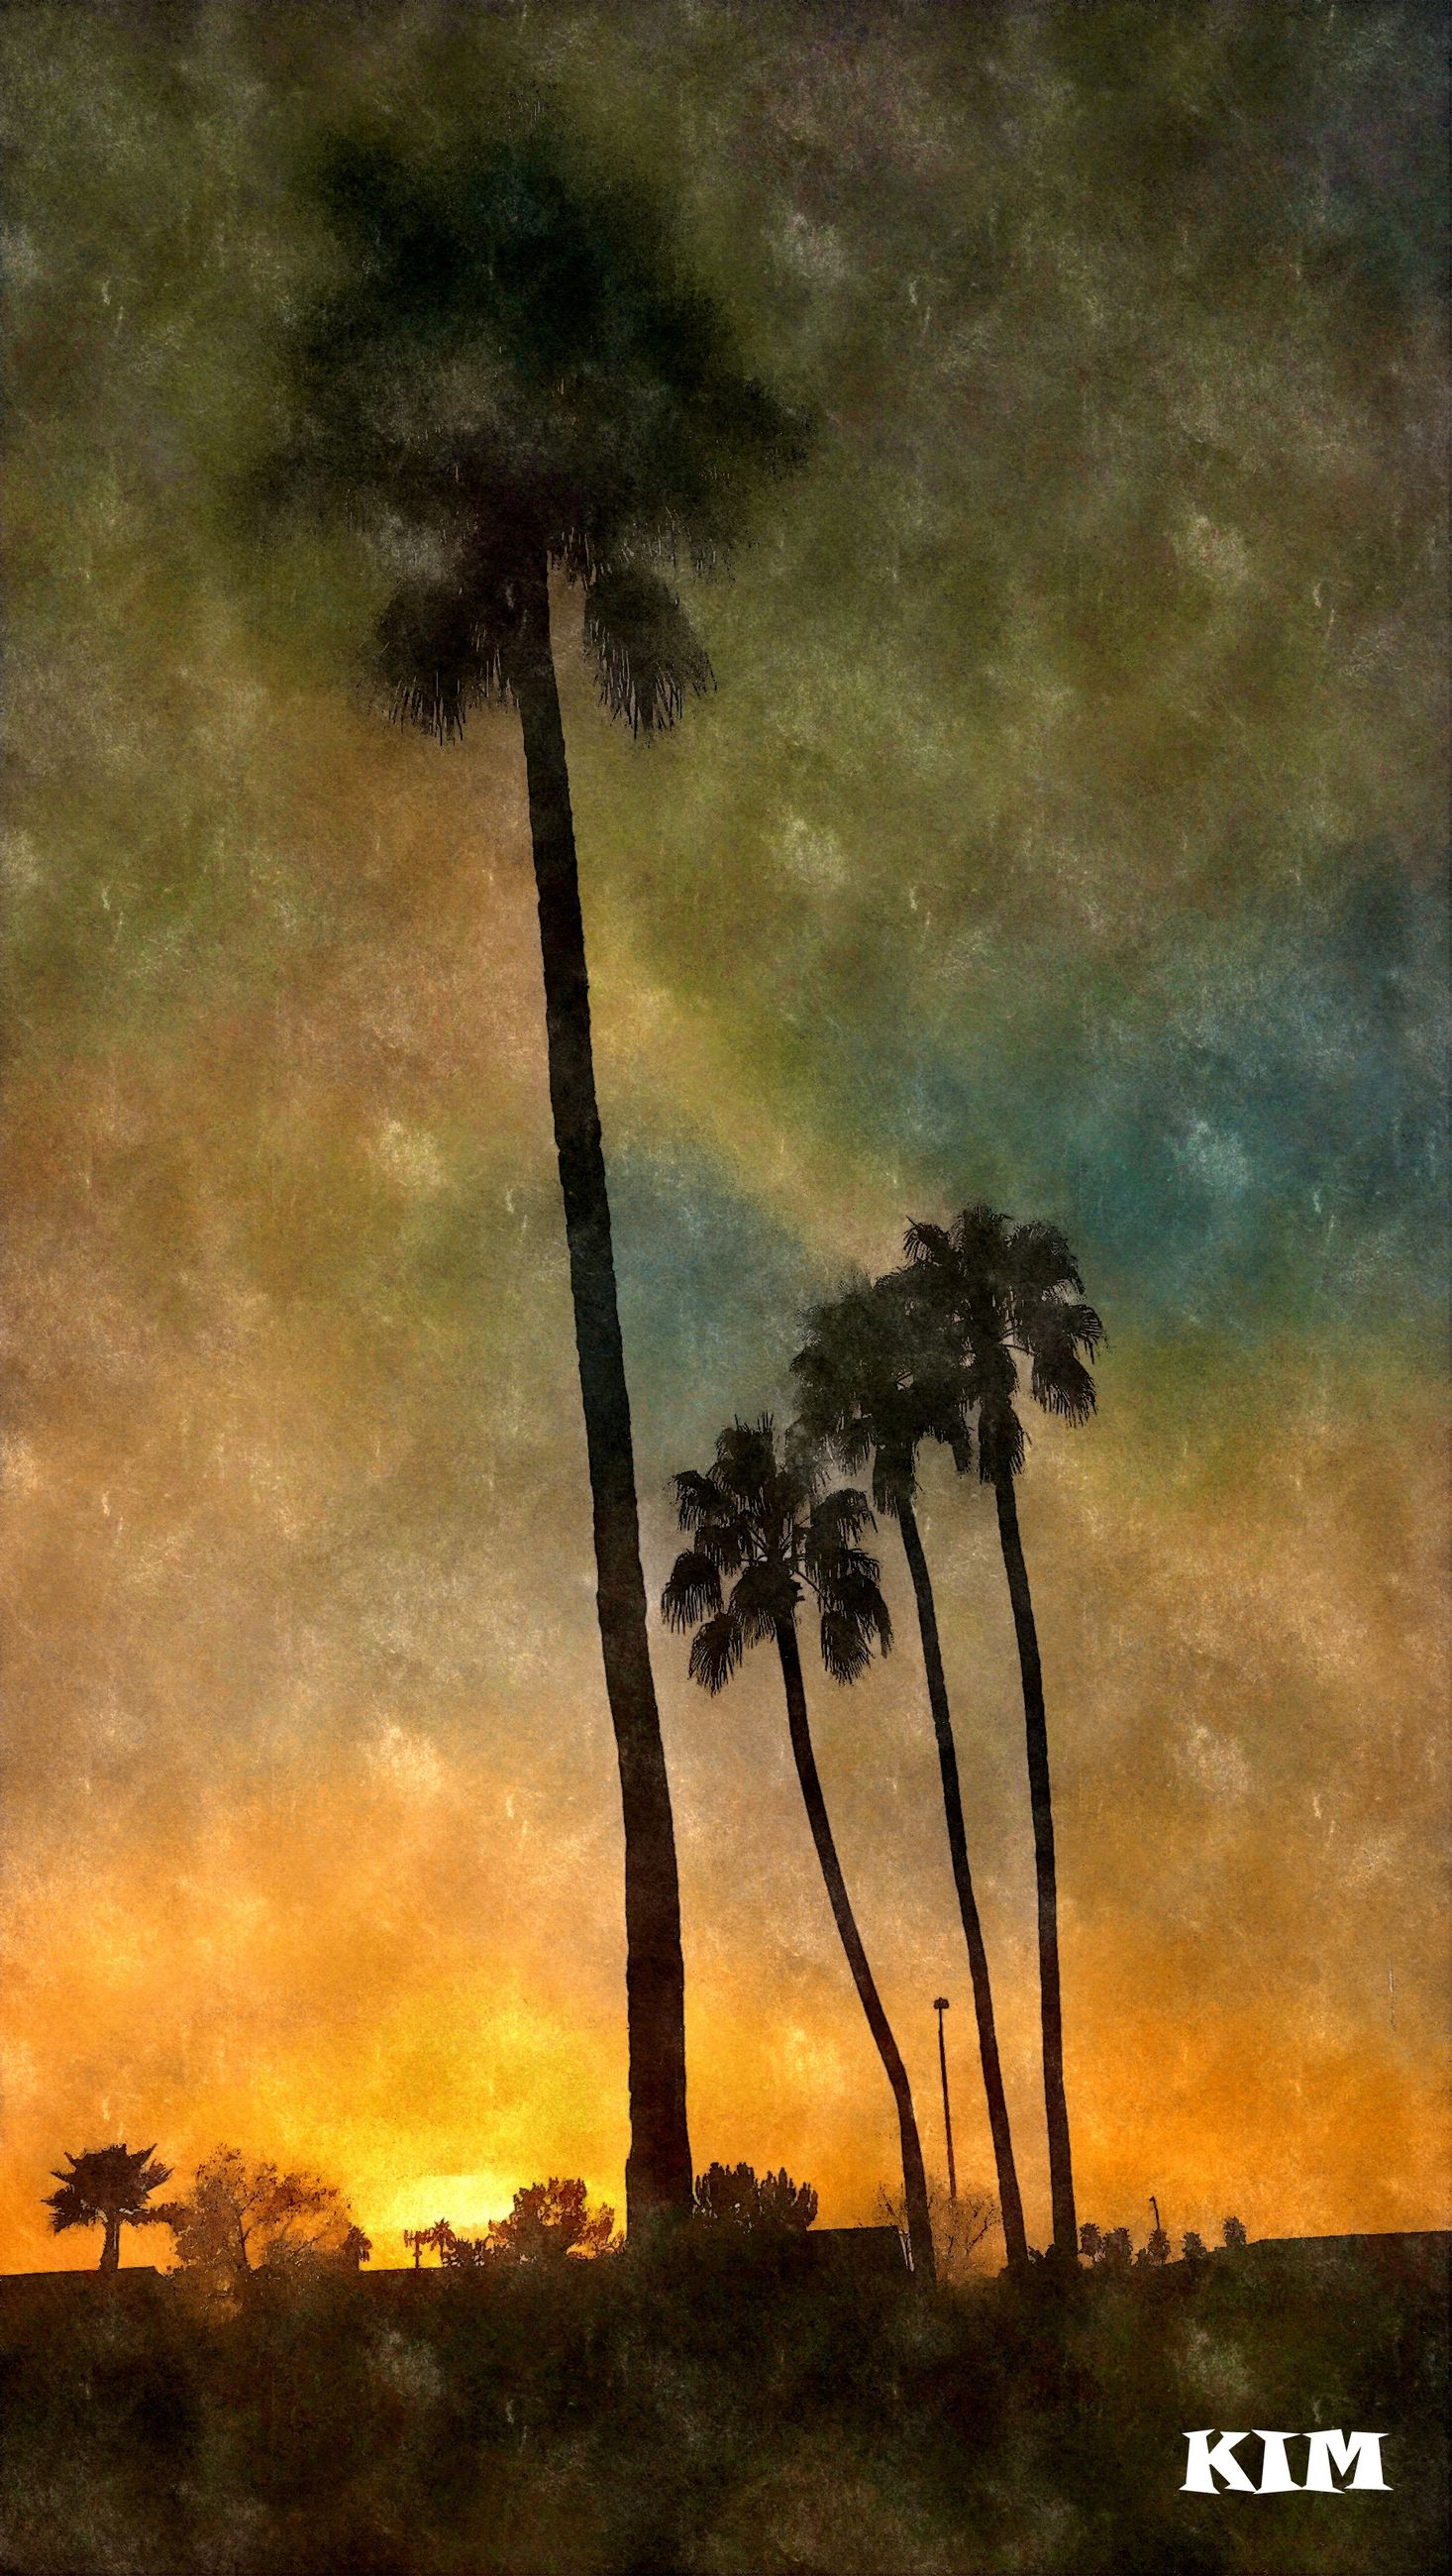 tree, nature, sky, growth, beauty in nature, no people, outdoors, scenics, tranquility, palm tree, sunset, milky way, star - space, cactus, night, galaxy, astronomy